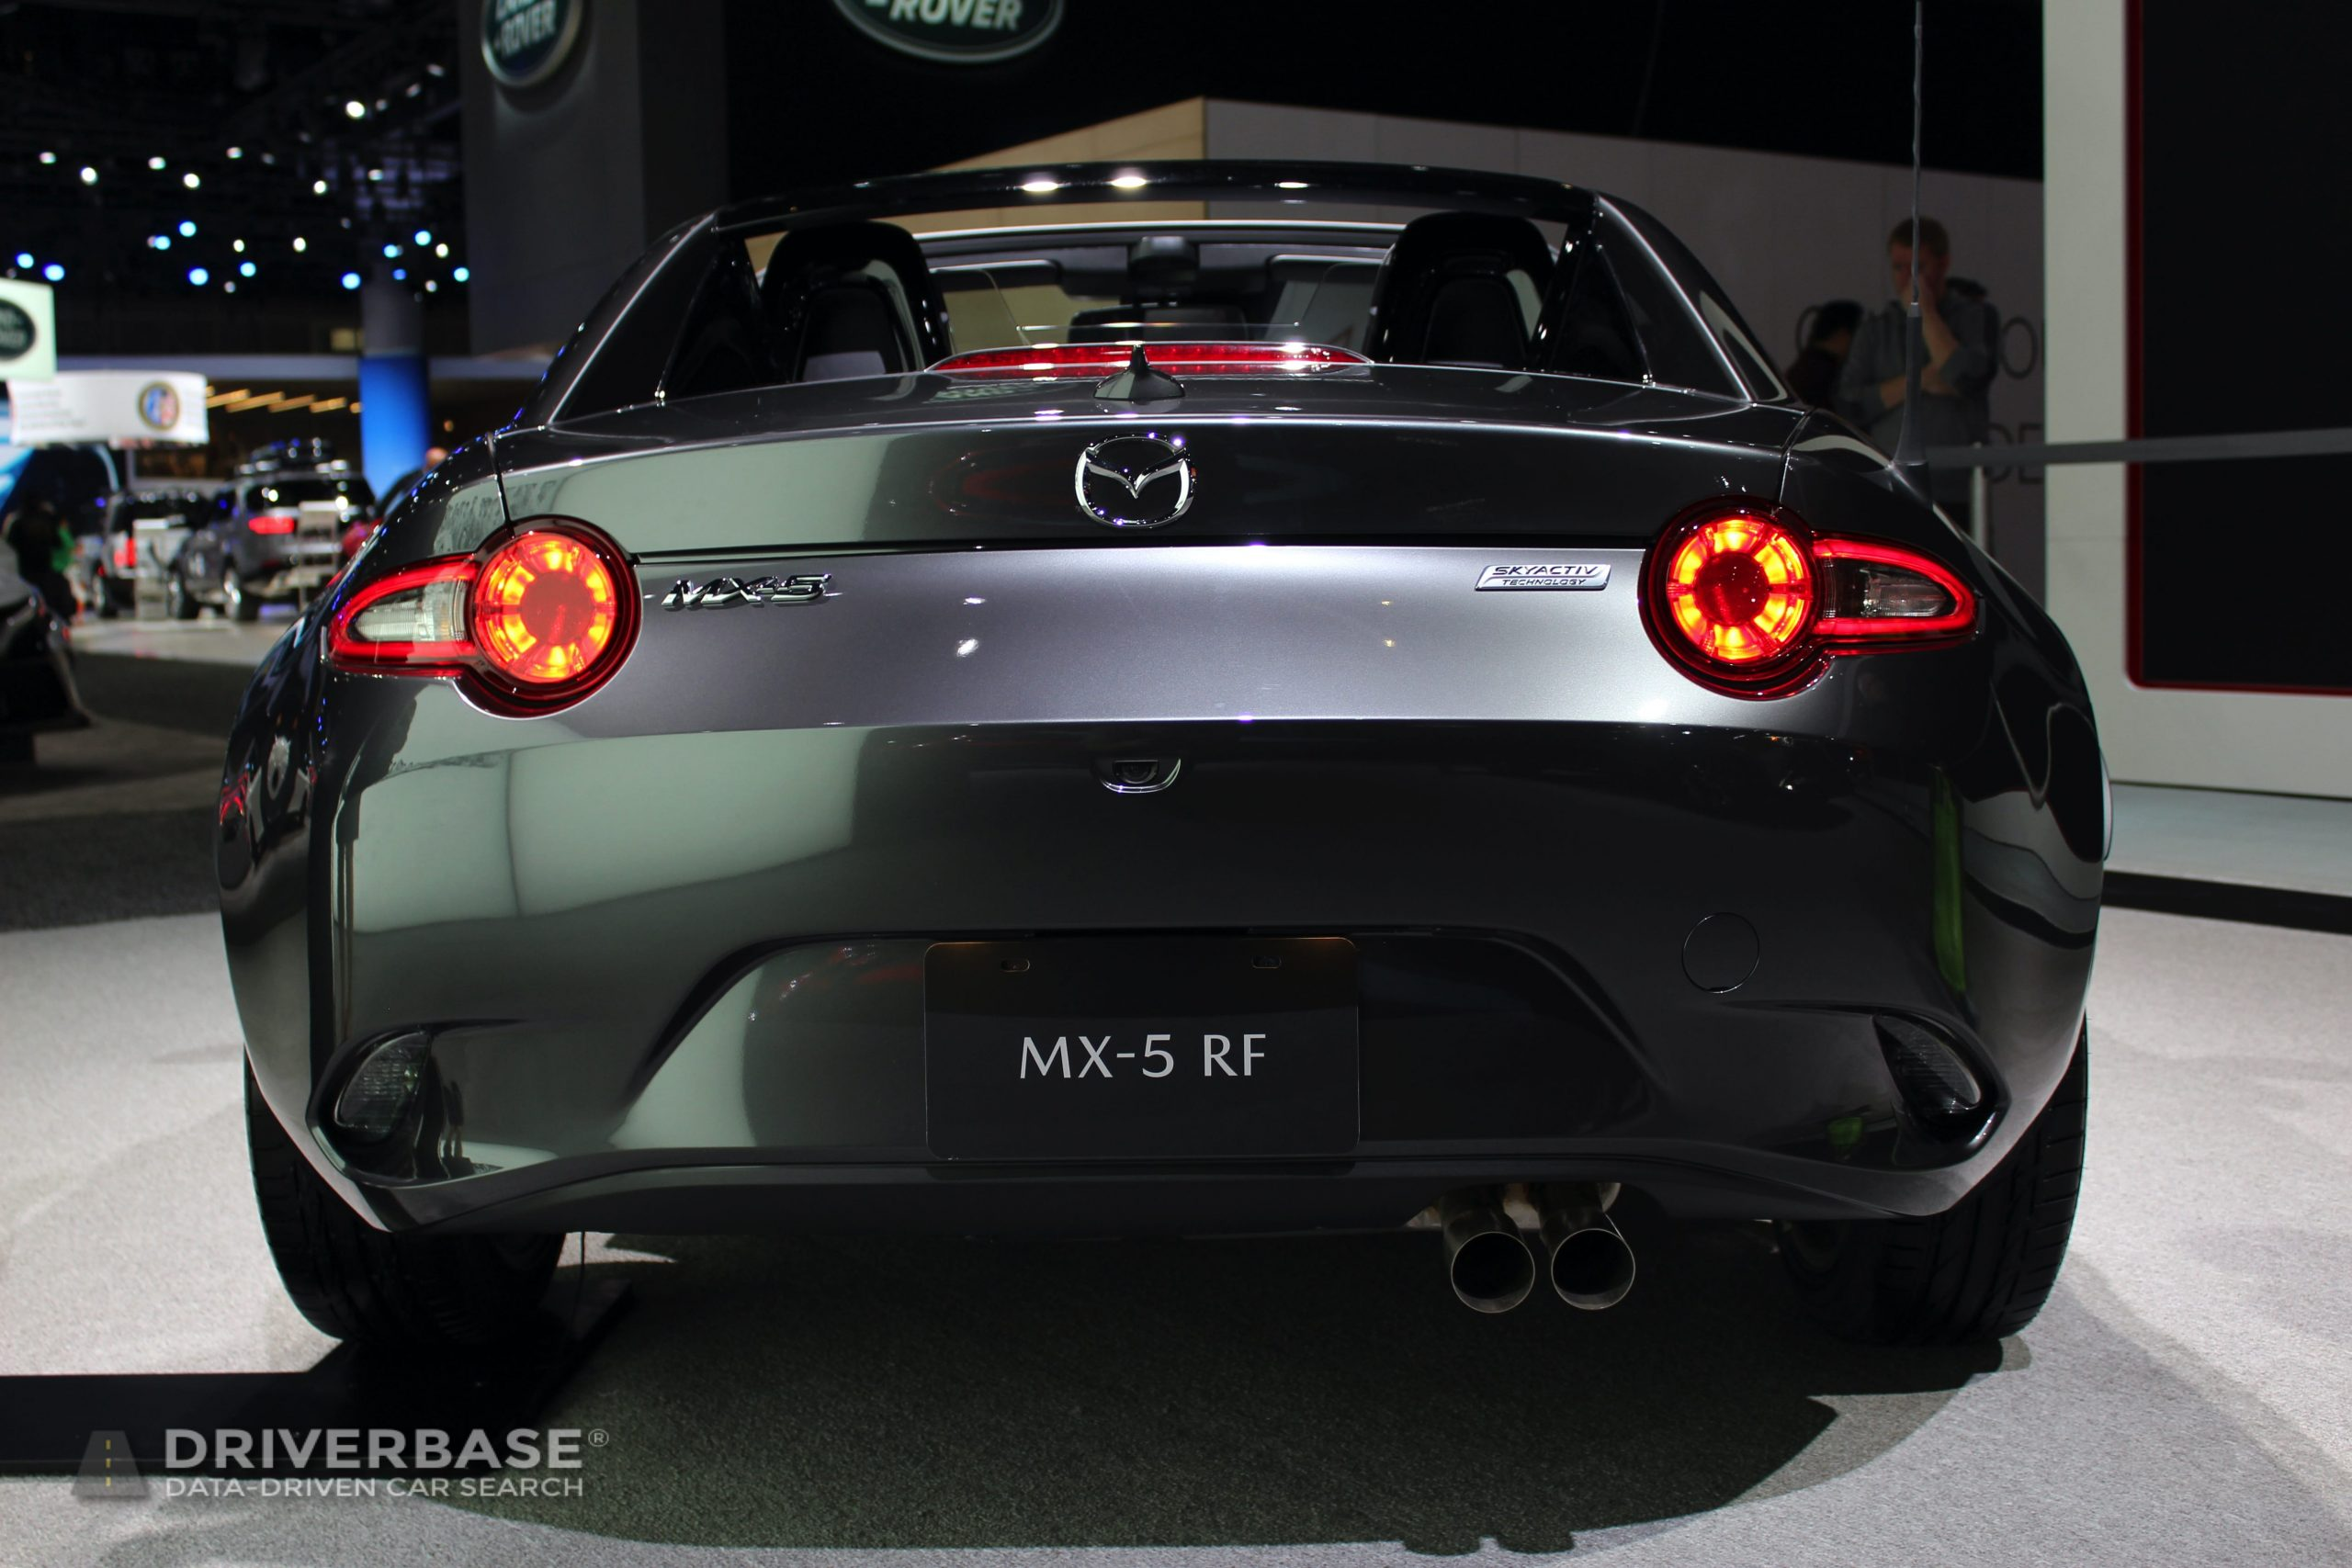 2020 Mazda MX-5 RF at the 2019 Los Angeles Auto Show